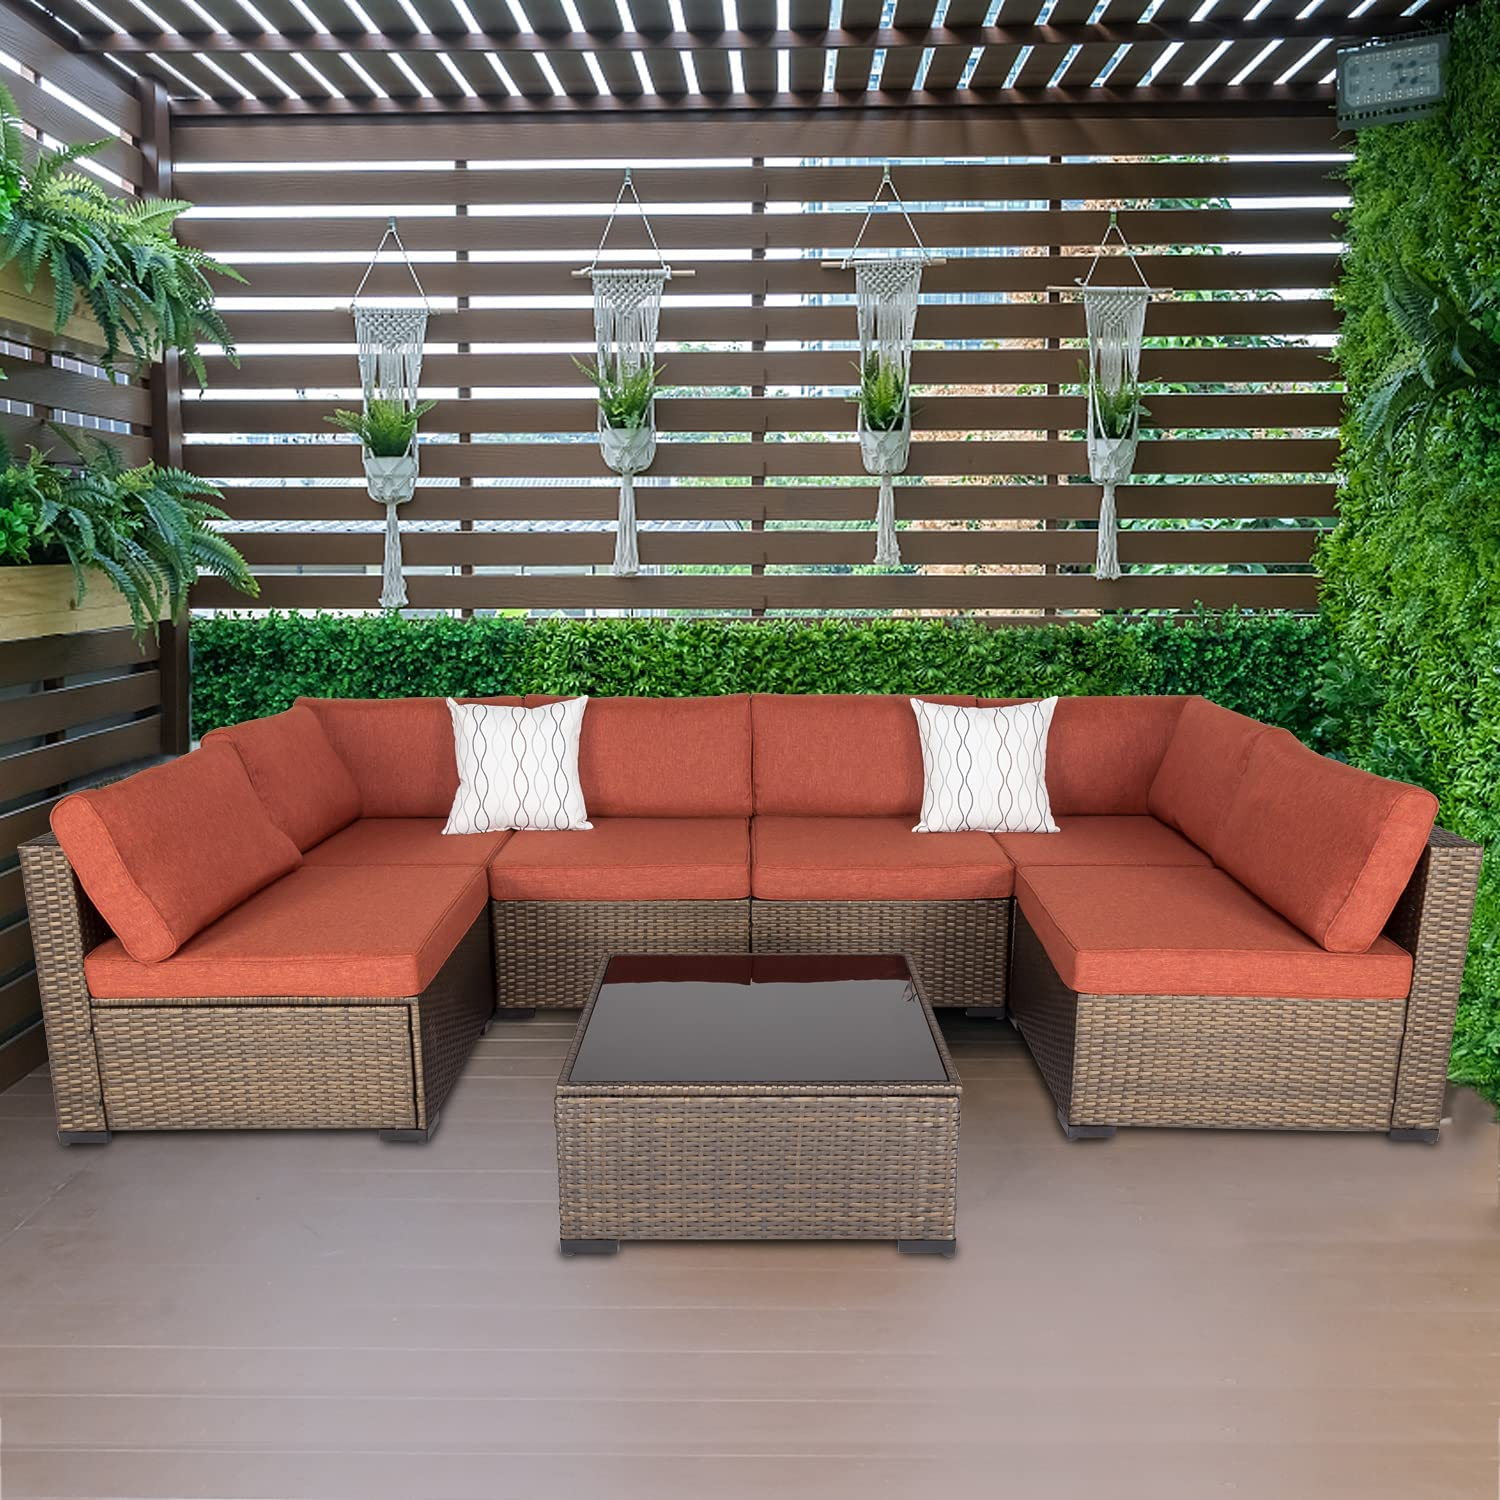 7 Pieces Outdoor Patio Sectional Sofa Set,Brown Wicker Furniture Set, Washable Seat Cushions with Zippers and Tempered Glass Table, Maple Red Cushion